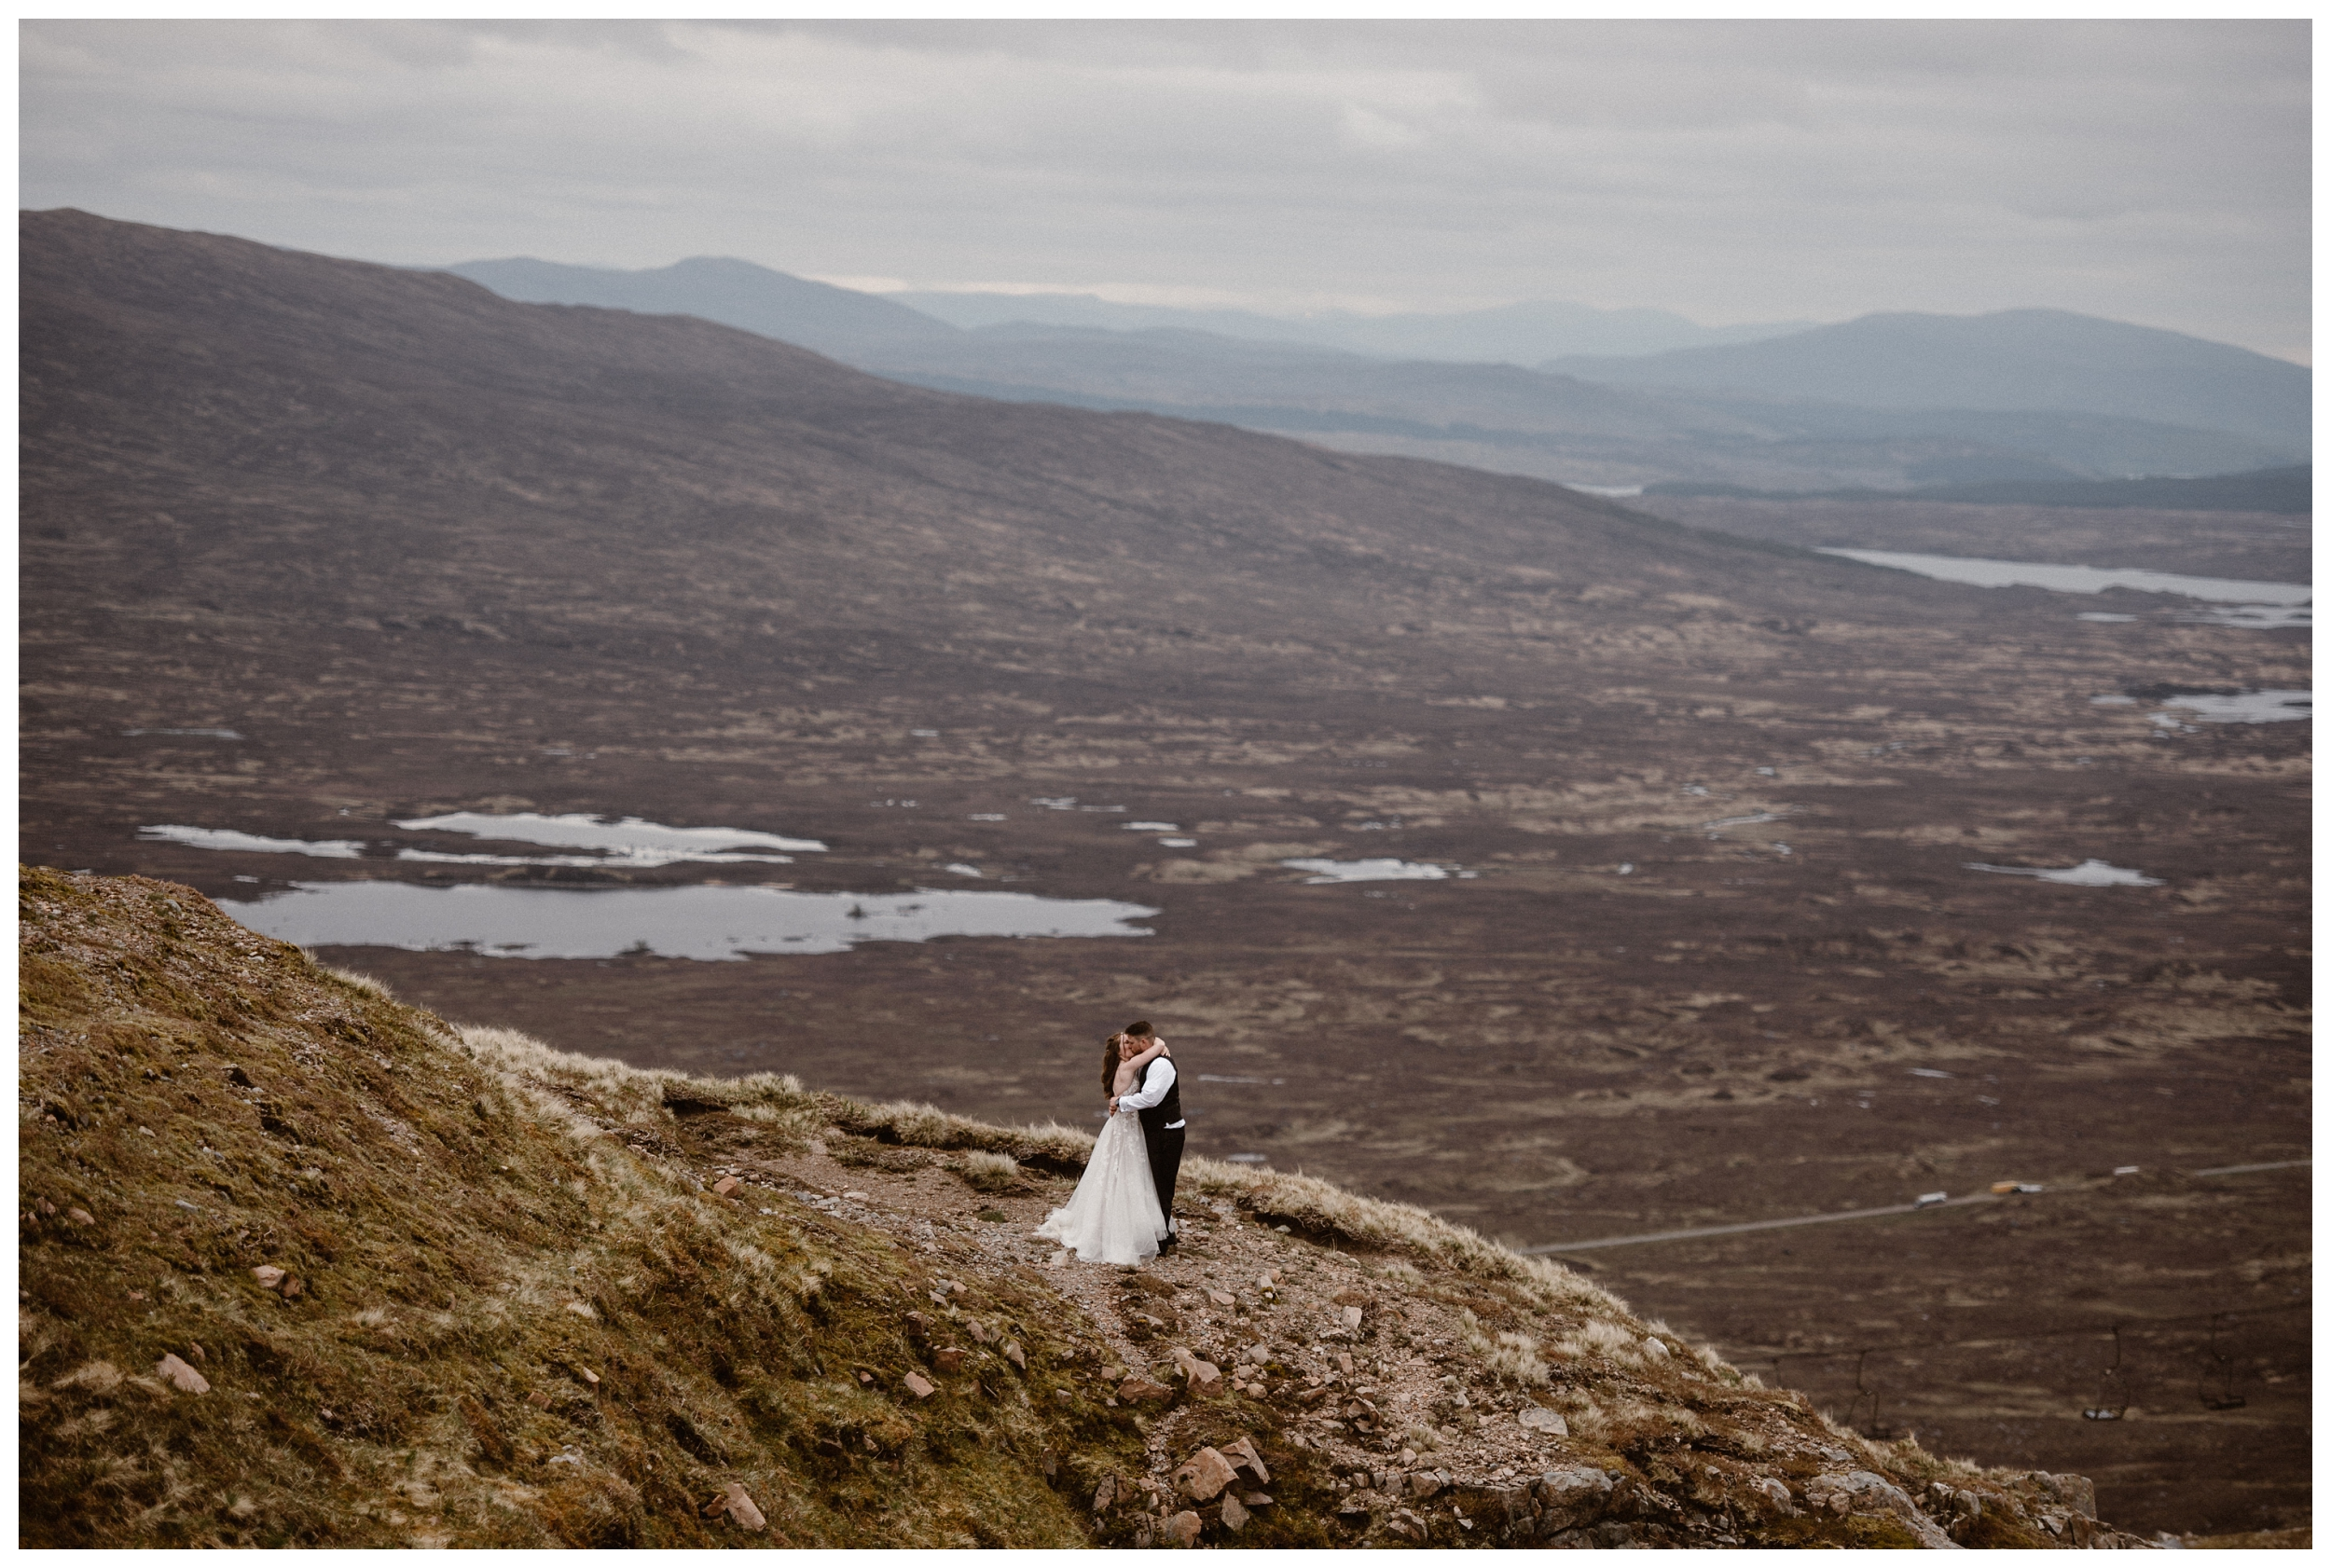 Elissa and Daniel planned a road trip through the Scottish Highlands on the day of their elopement to experience some place new on their wedding day. Photo by Maddie Mae, Adventure Instead.